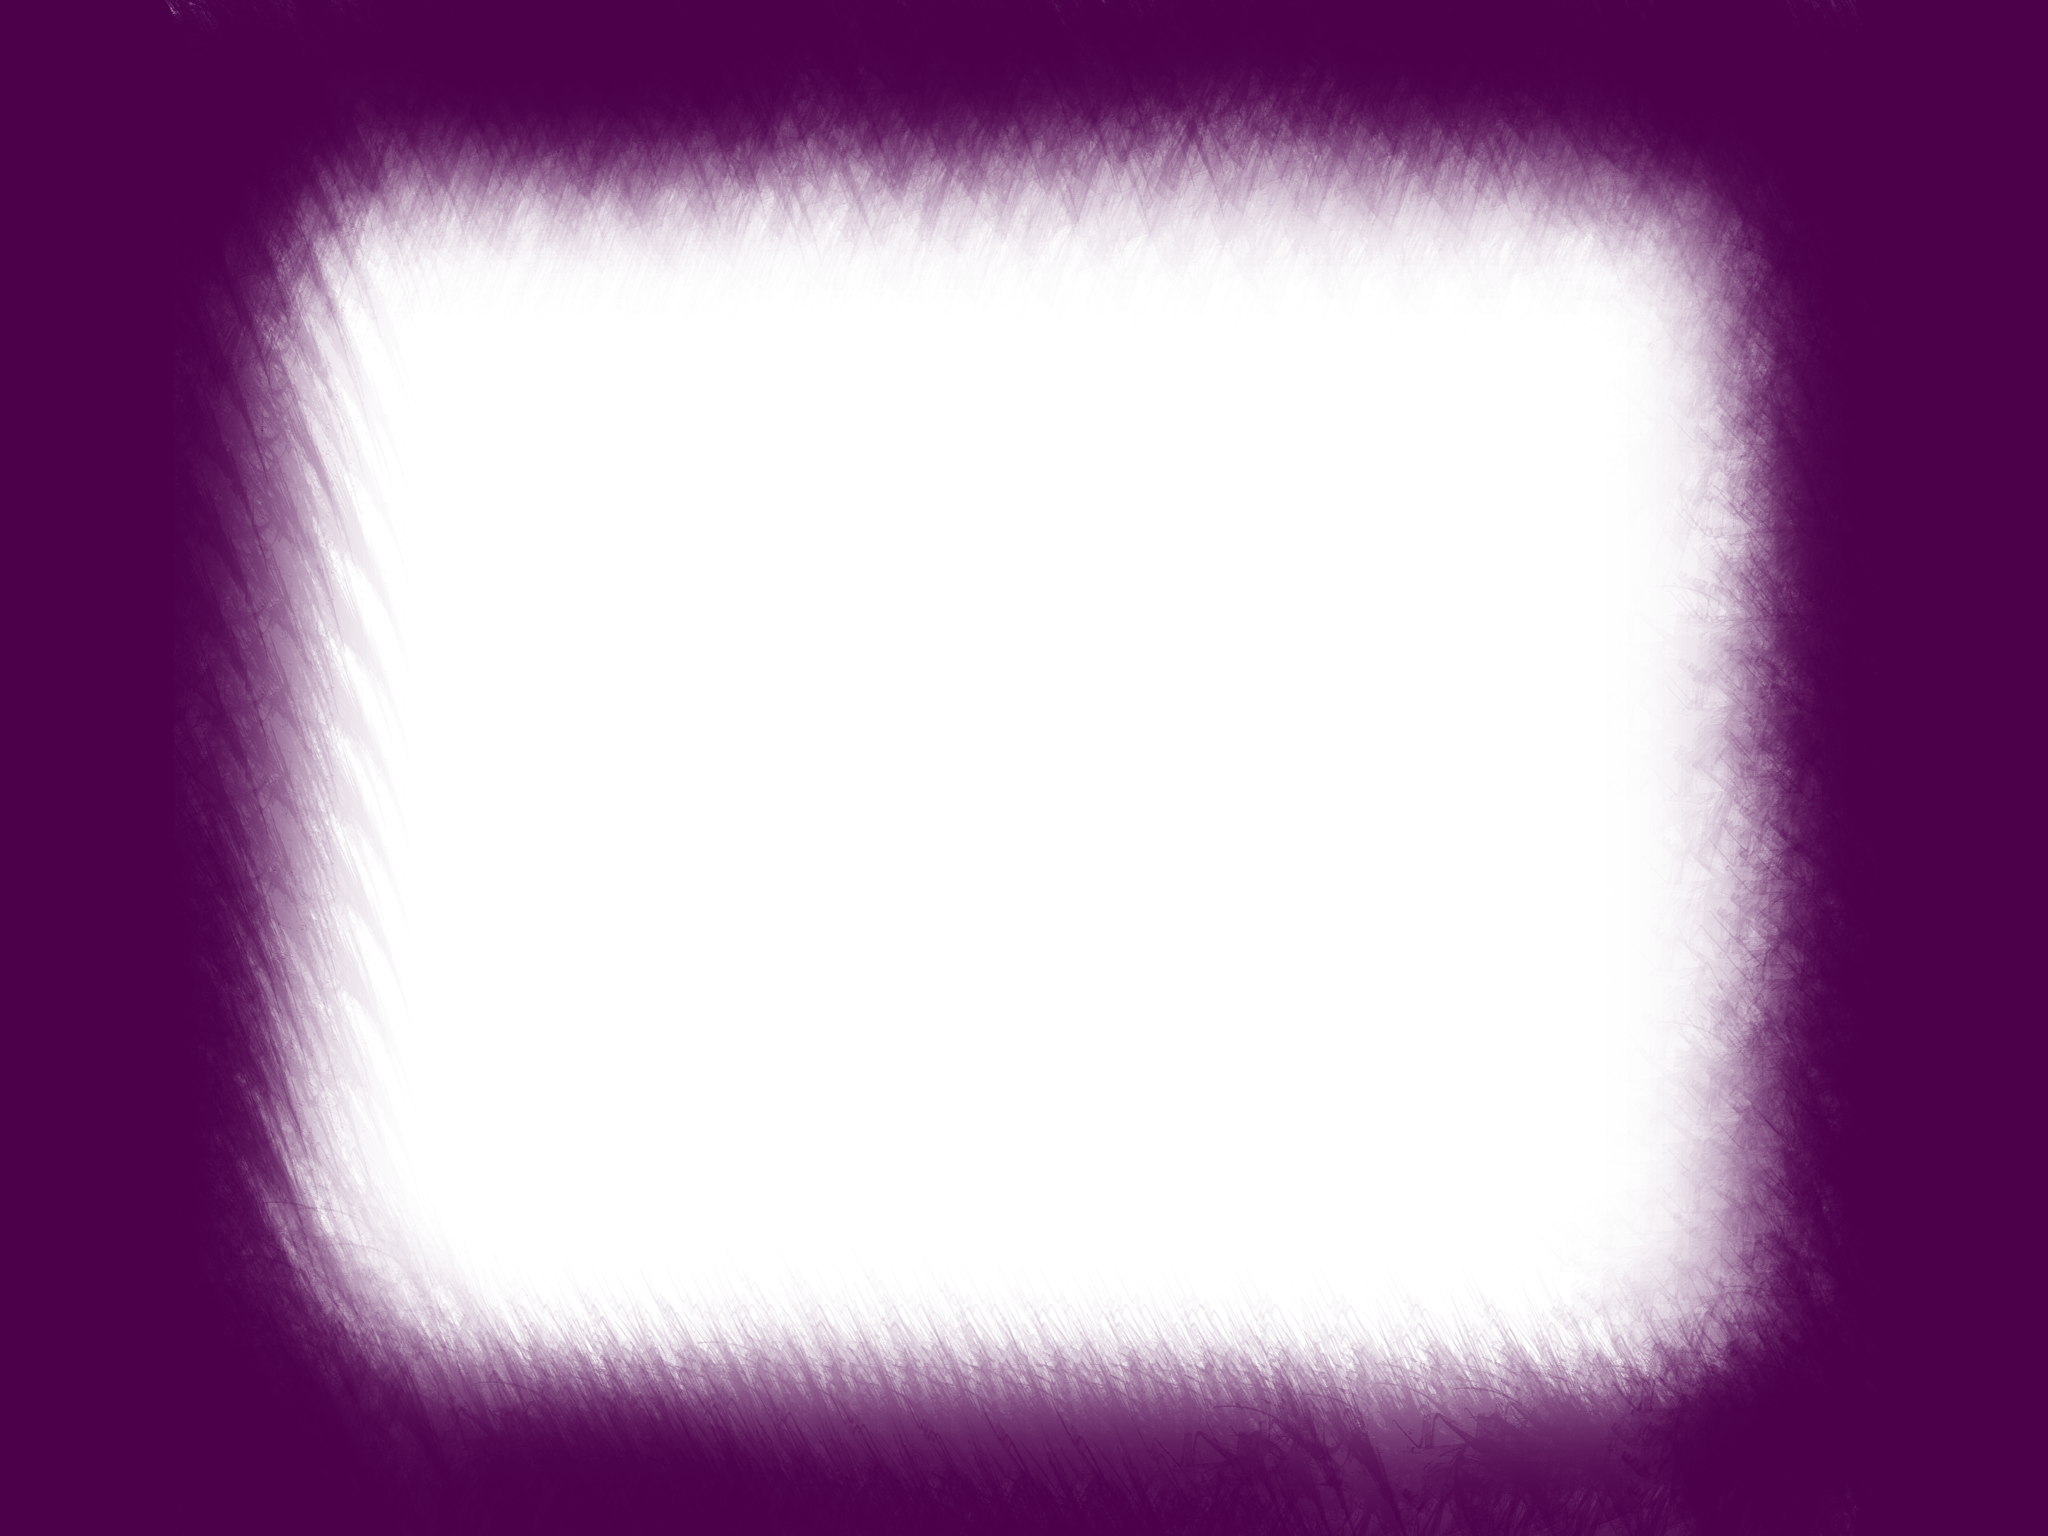 By melmuff on deviantart. Purple border png